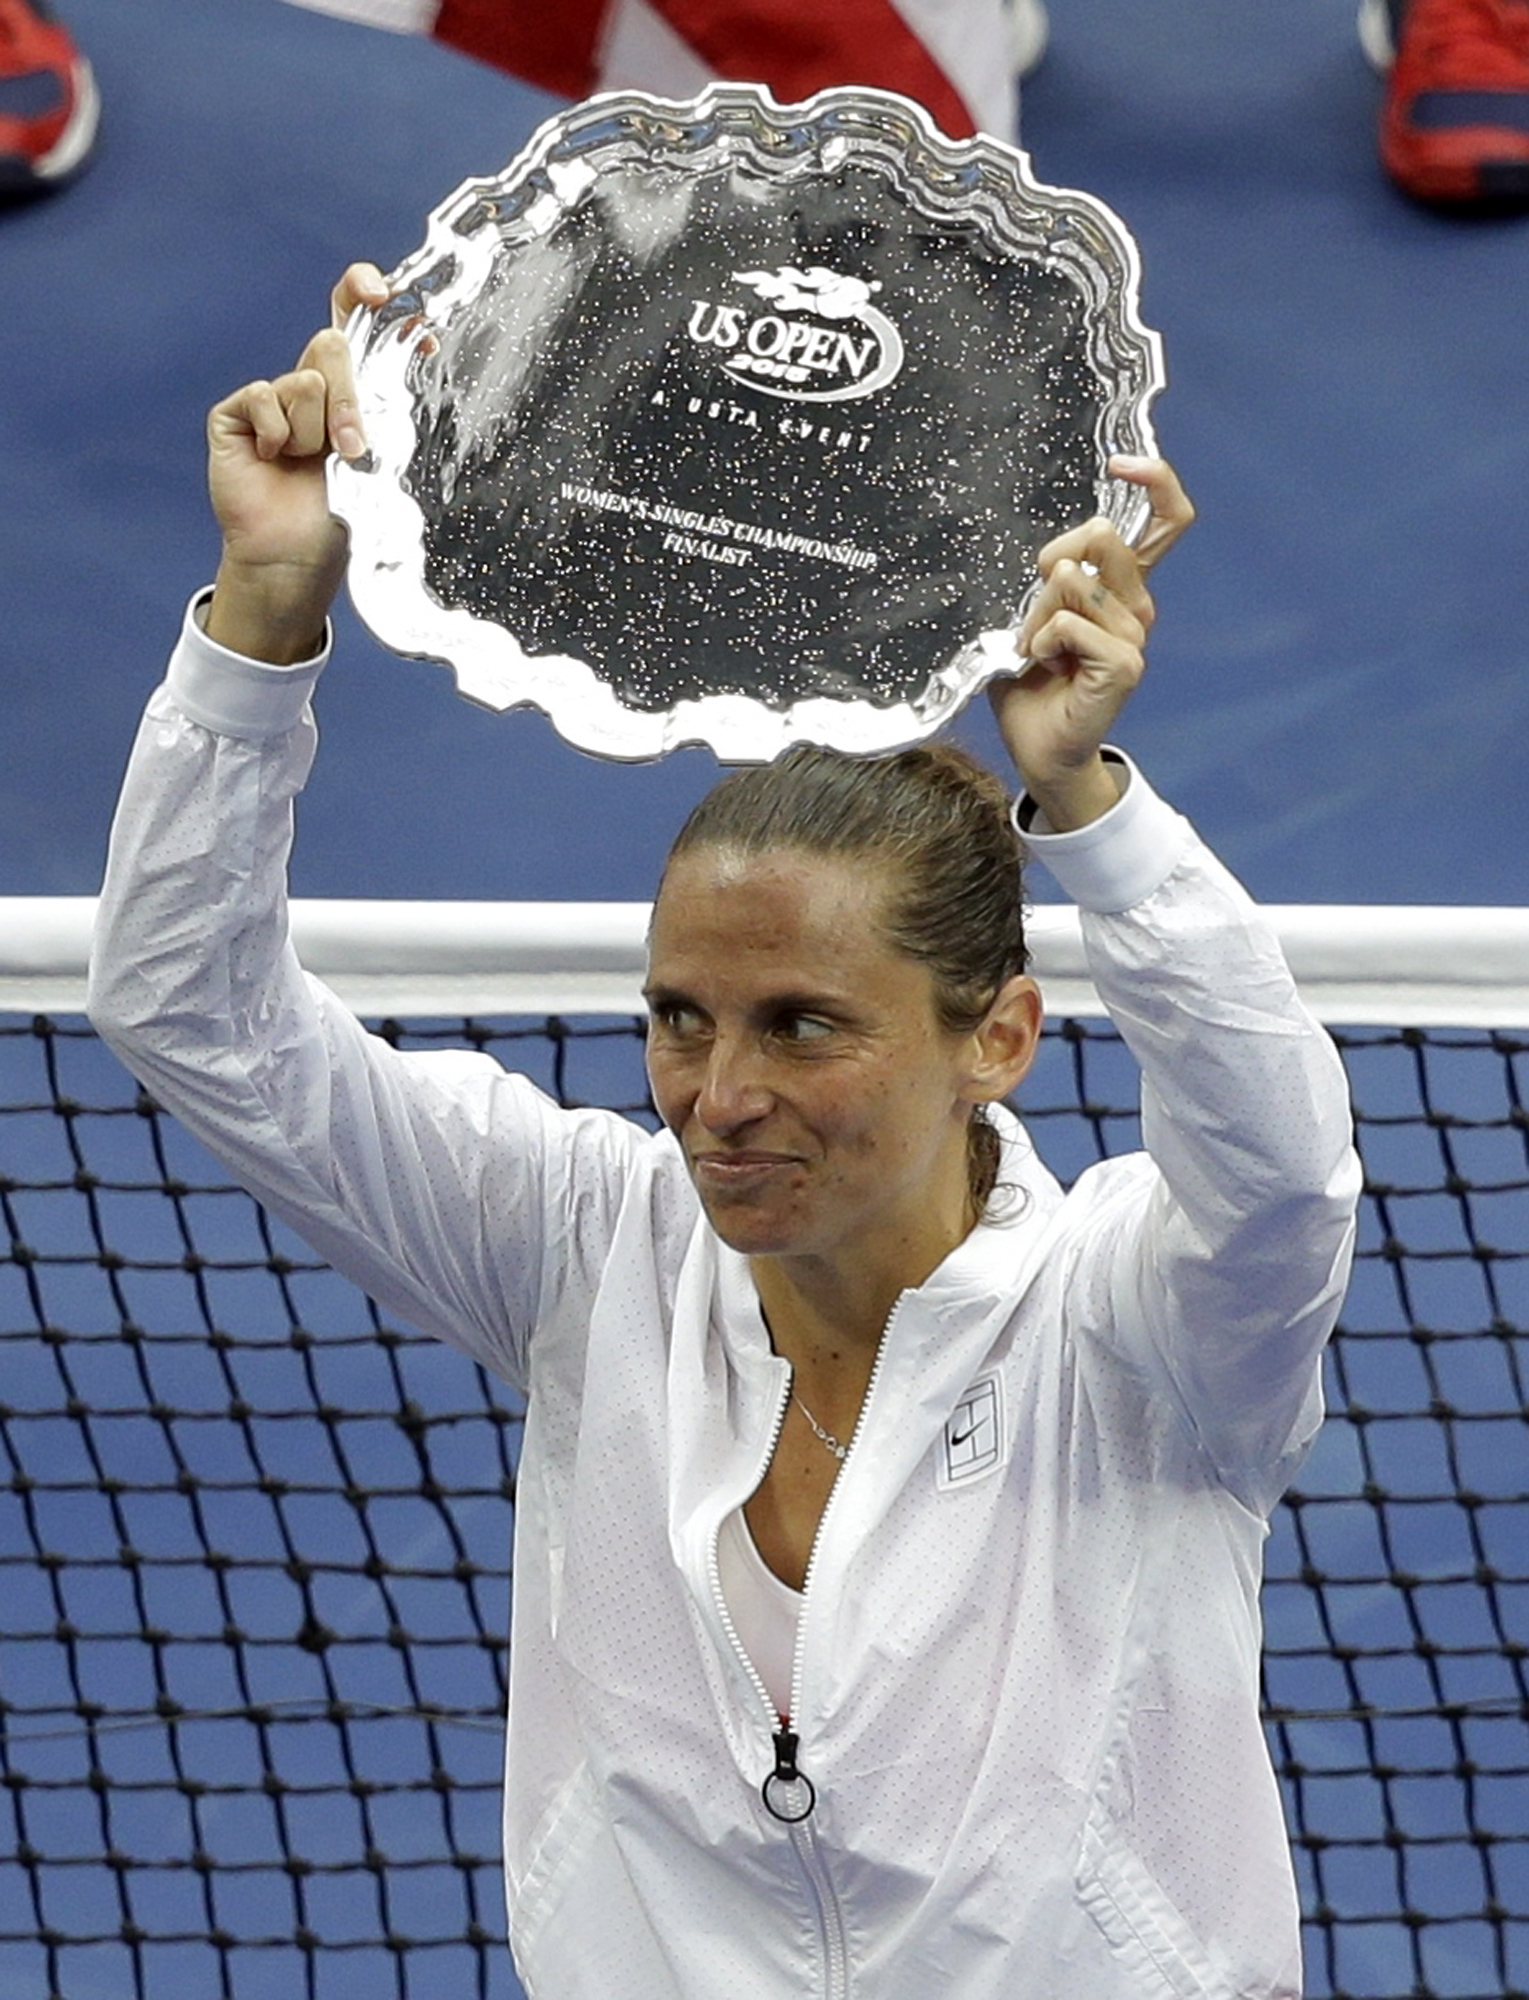 FILE - In this  Saturday, Sept. 12, 2015 file photo Roberta Vinci, of Italy, holds the finalist's trophy after she was beaten by Flavia Pennetta, of Italy, in the women's championship match of the U.S. Open tennis tournament, in New York. Former U.S. Open